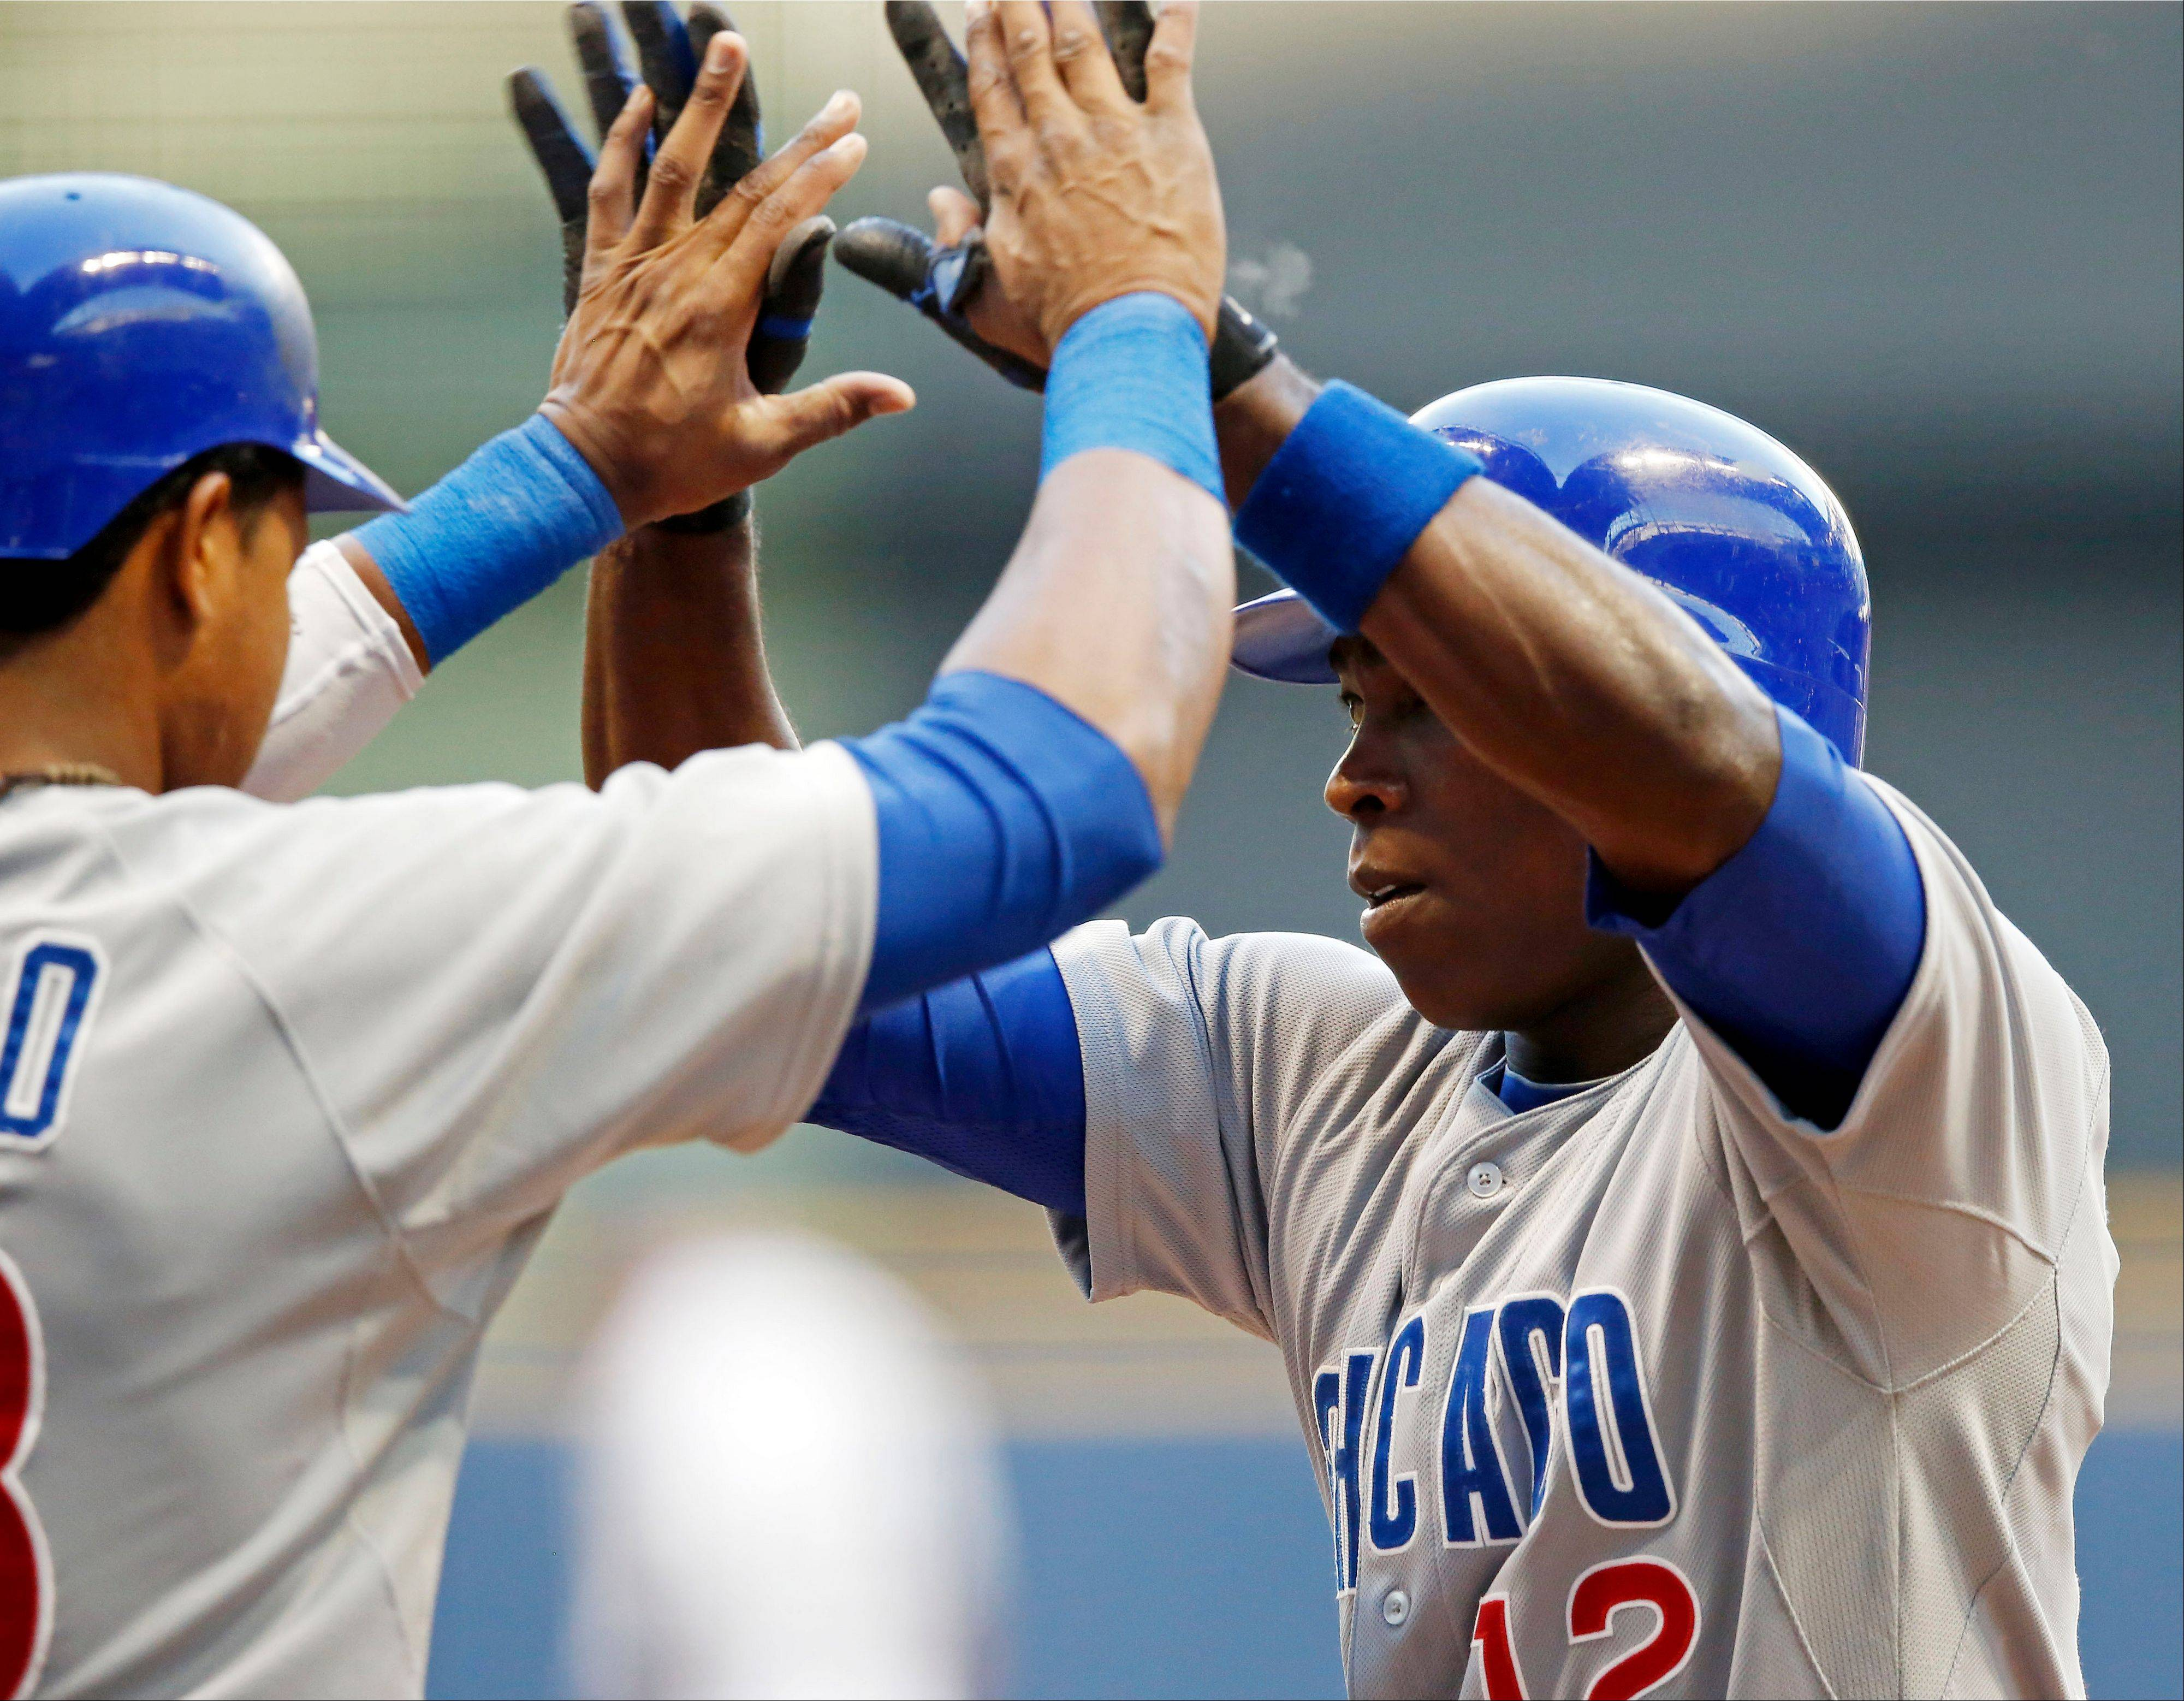 Cubs left fielder Alfonso Soriano, right, is greeted at home by Starlin Castro Tuesday after hitting a 3-run home run during the first inning of a baseball game against the Milwaukee Brewers.